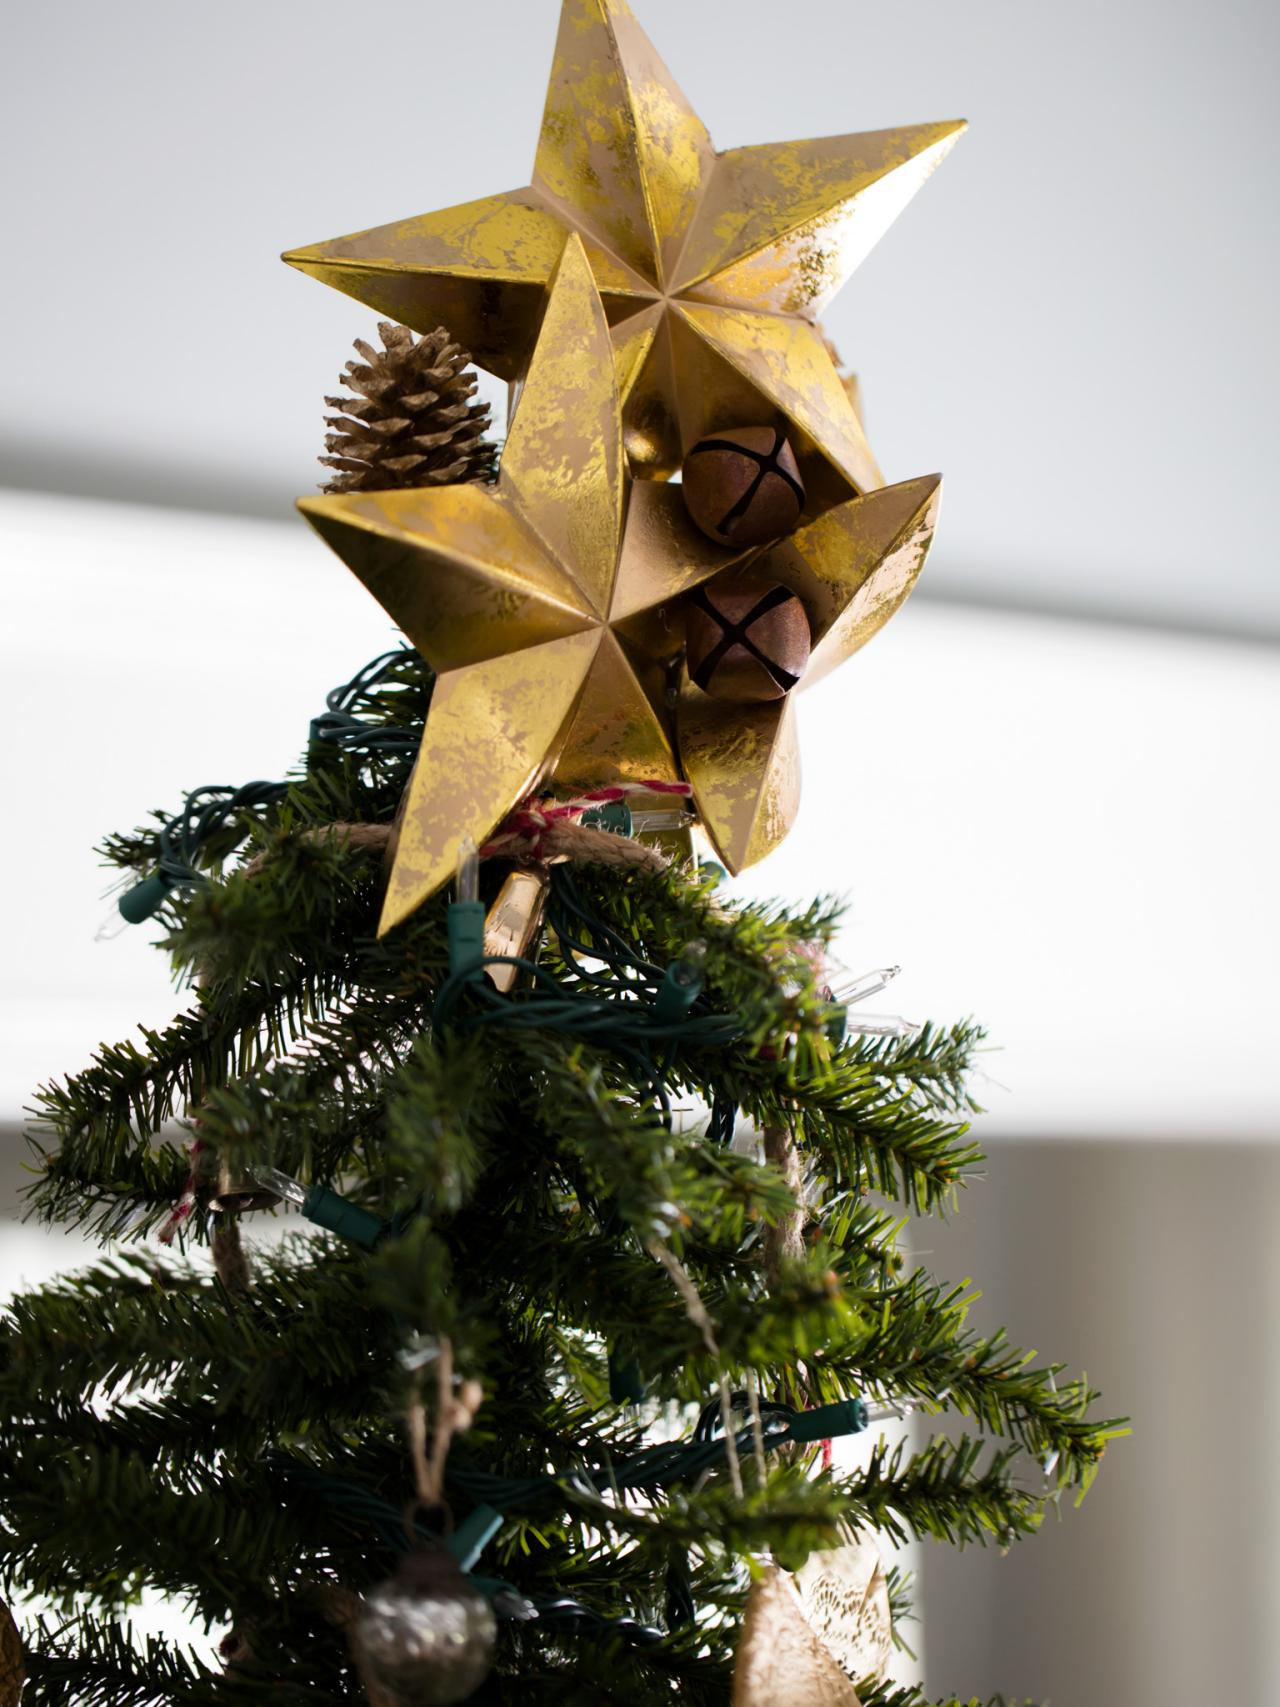 Cluster Stars on Top. Since Christmas tree ... : hgtv christmas tree decorating ideas - www.pureclipart.com